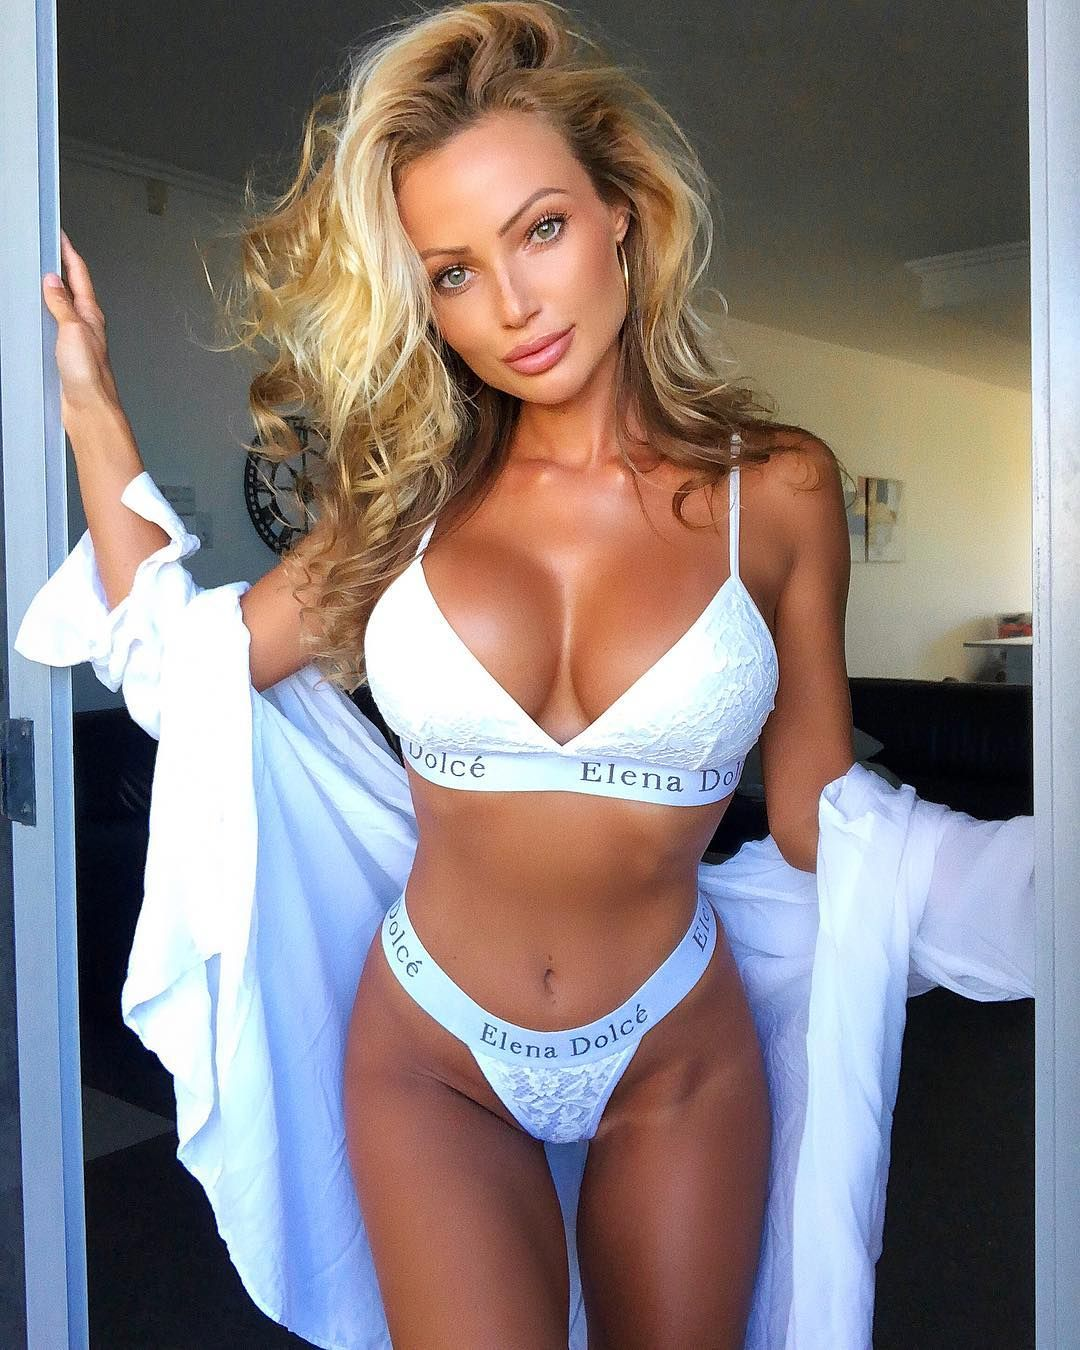 Video Abby Dowse nudes (68 photo), Ass, Cleavage, Selfie, butt 2019